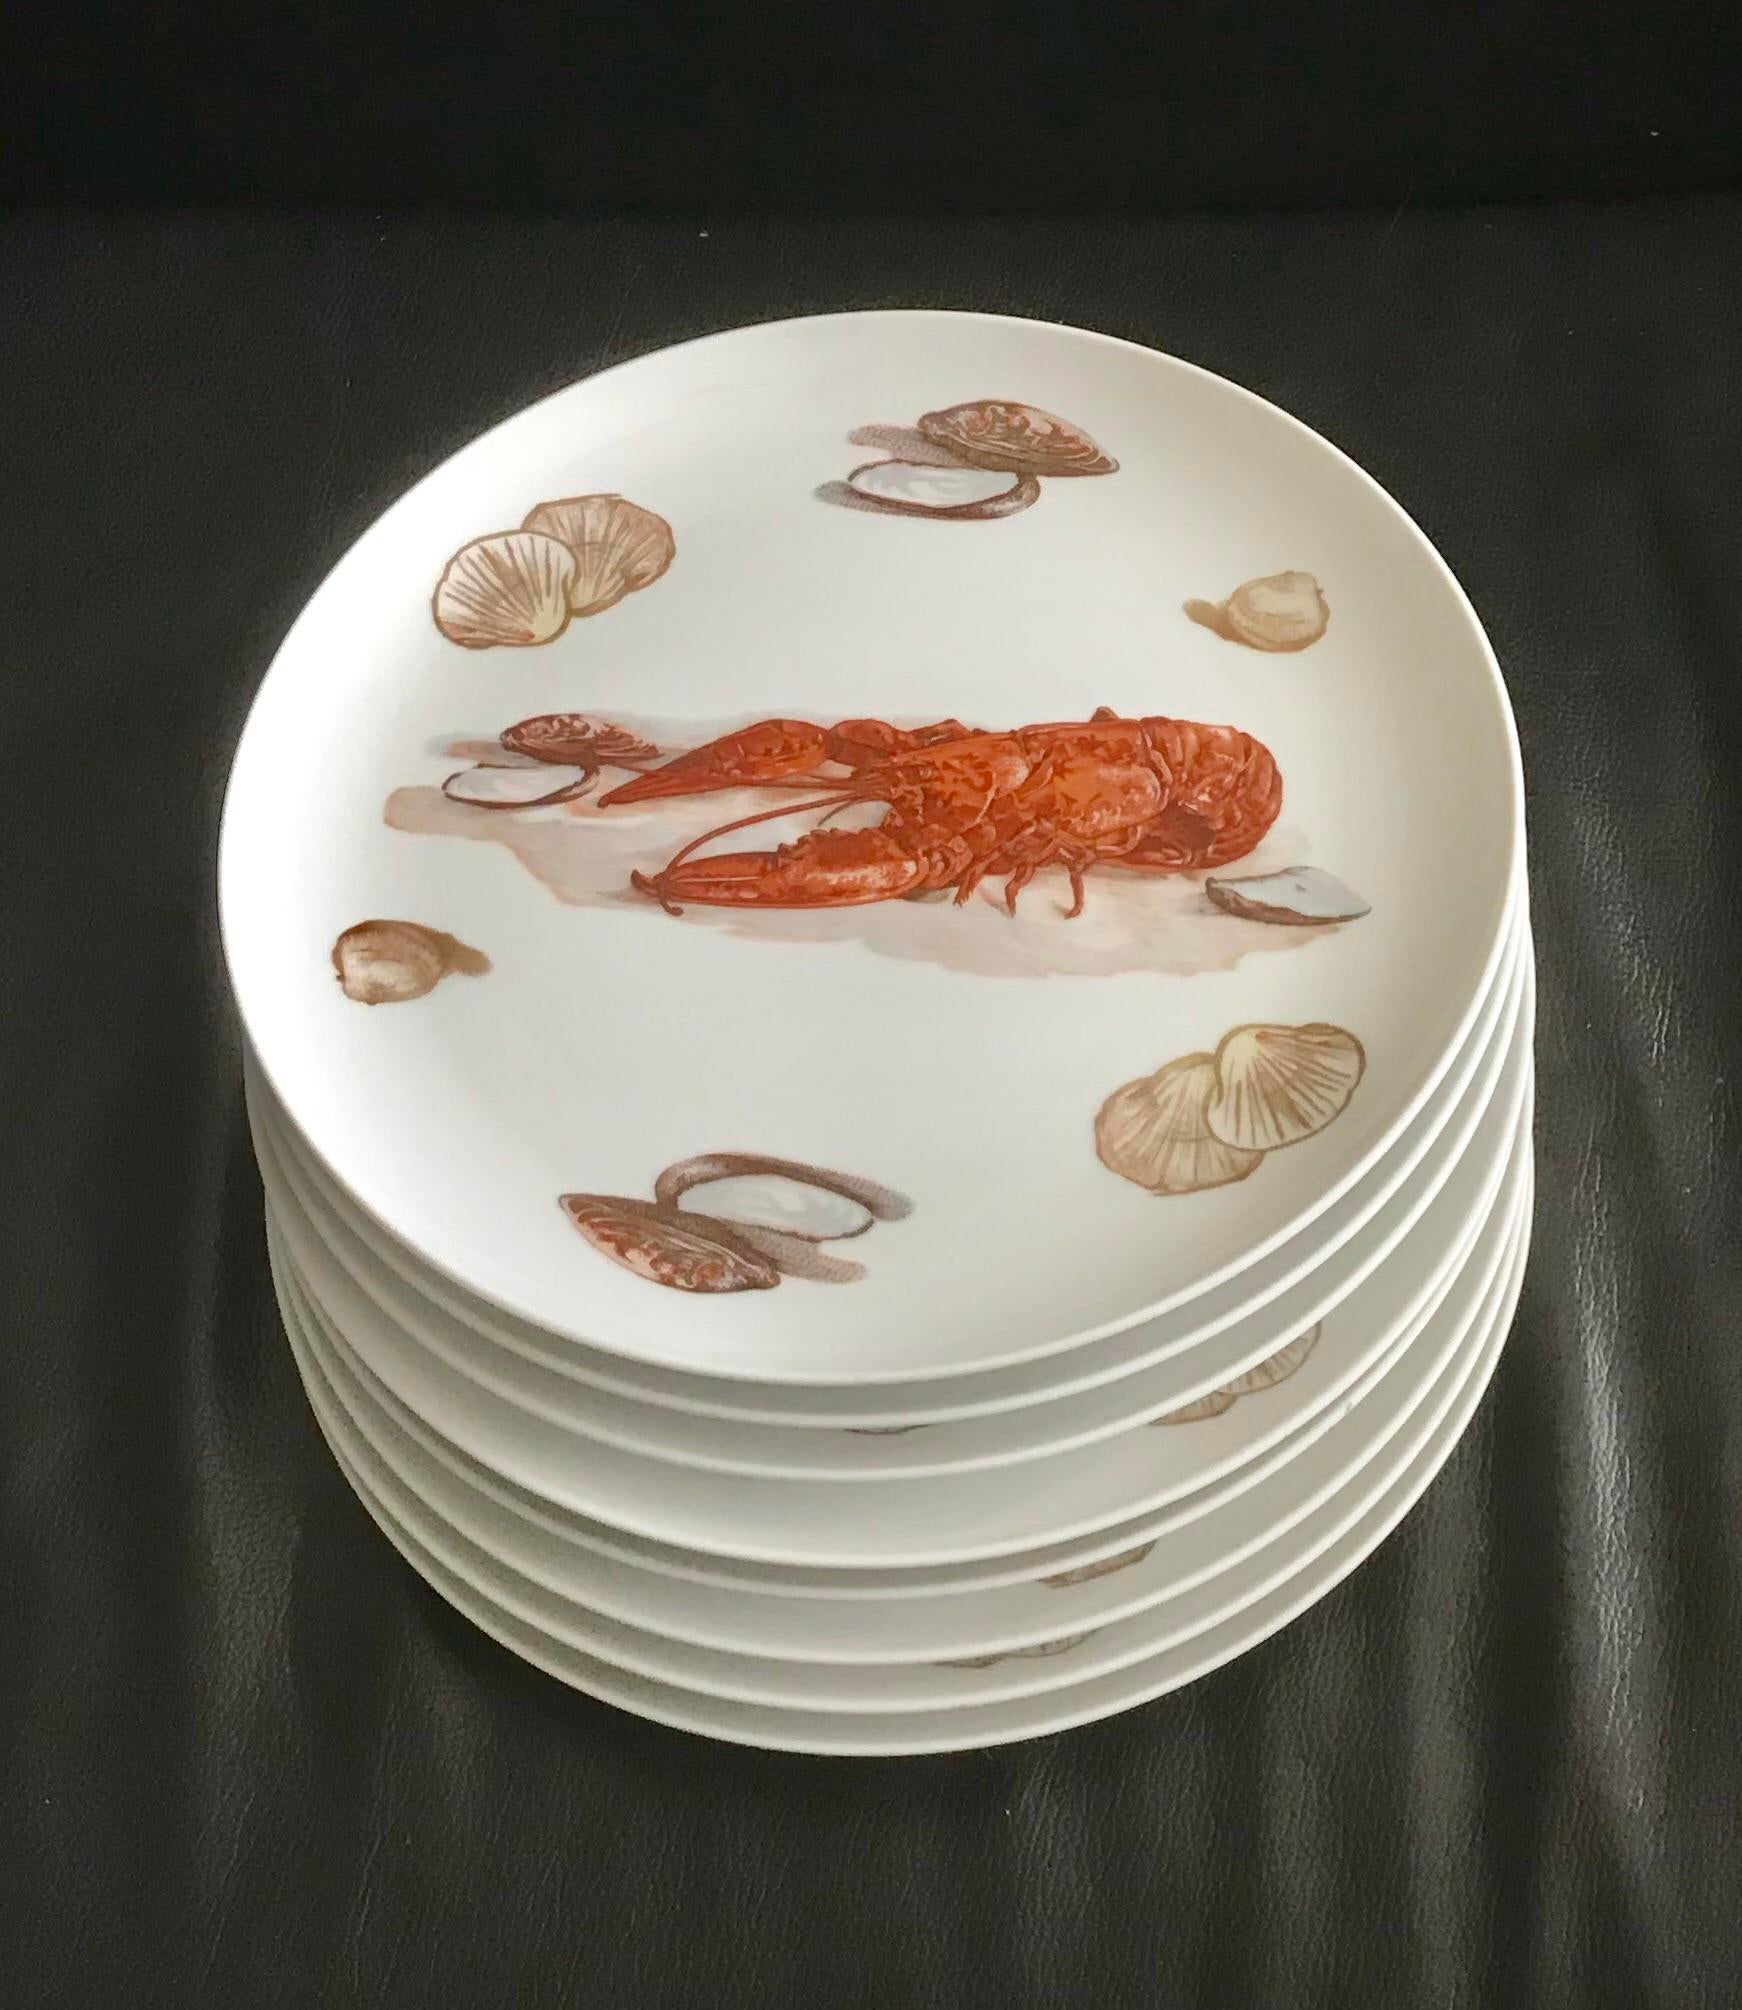 Japanese Lobster u0026 Clam Dinner Plates - Set of 8 - Image 5 ...  sc 1 st  Chairish : lobster dinner plates - pezcame.com